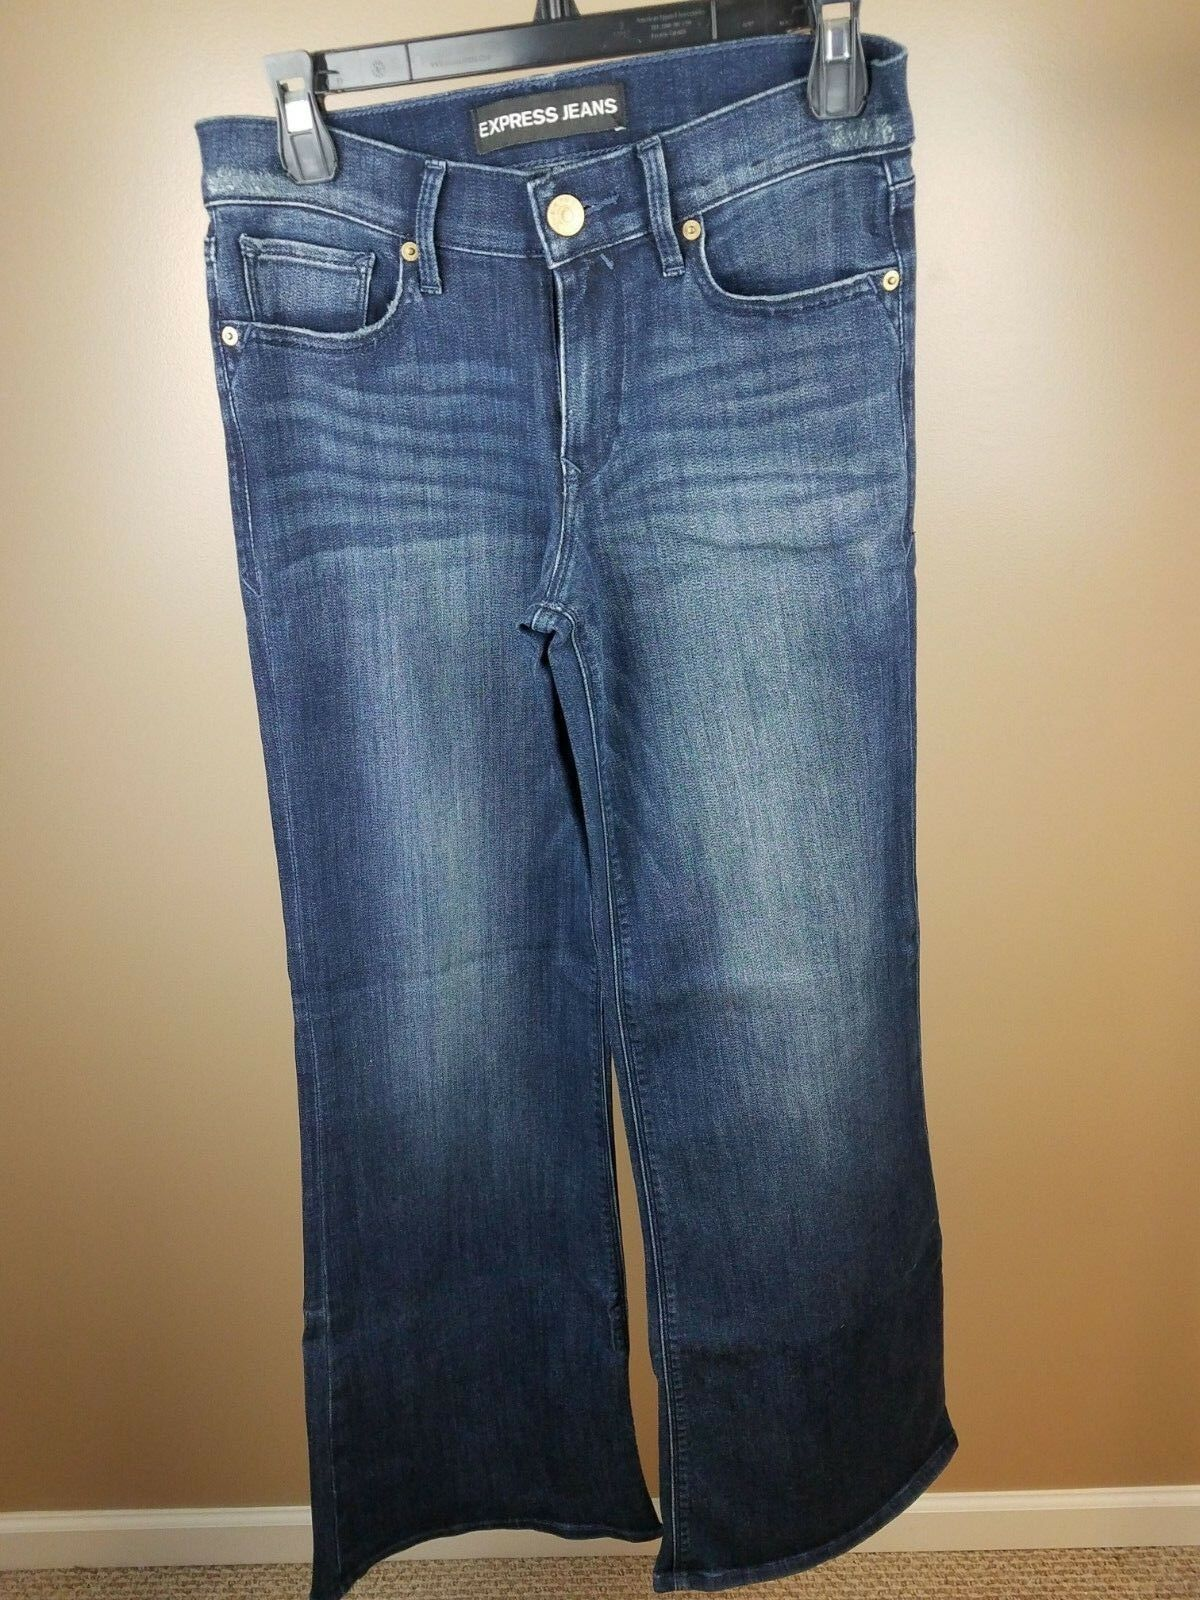 Express High Wasted Jeans Dark bluee Wash Flared Womens Size 4